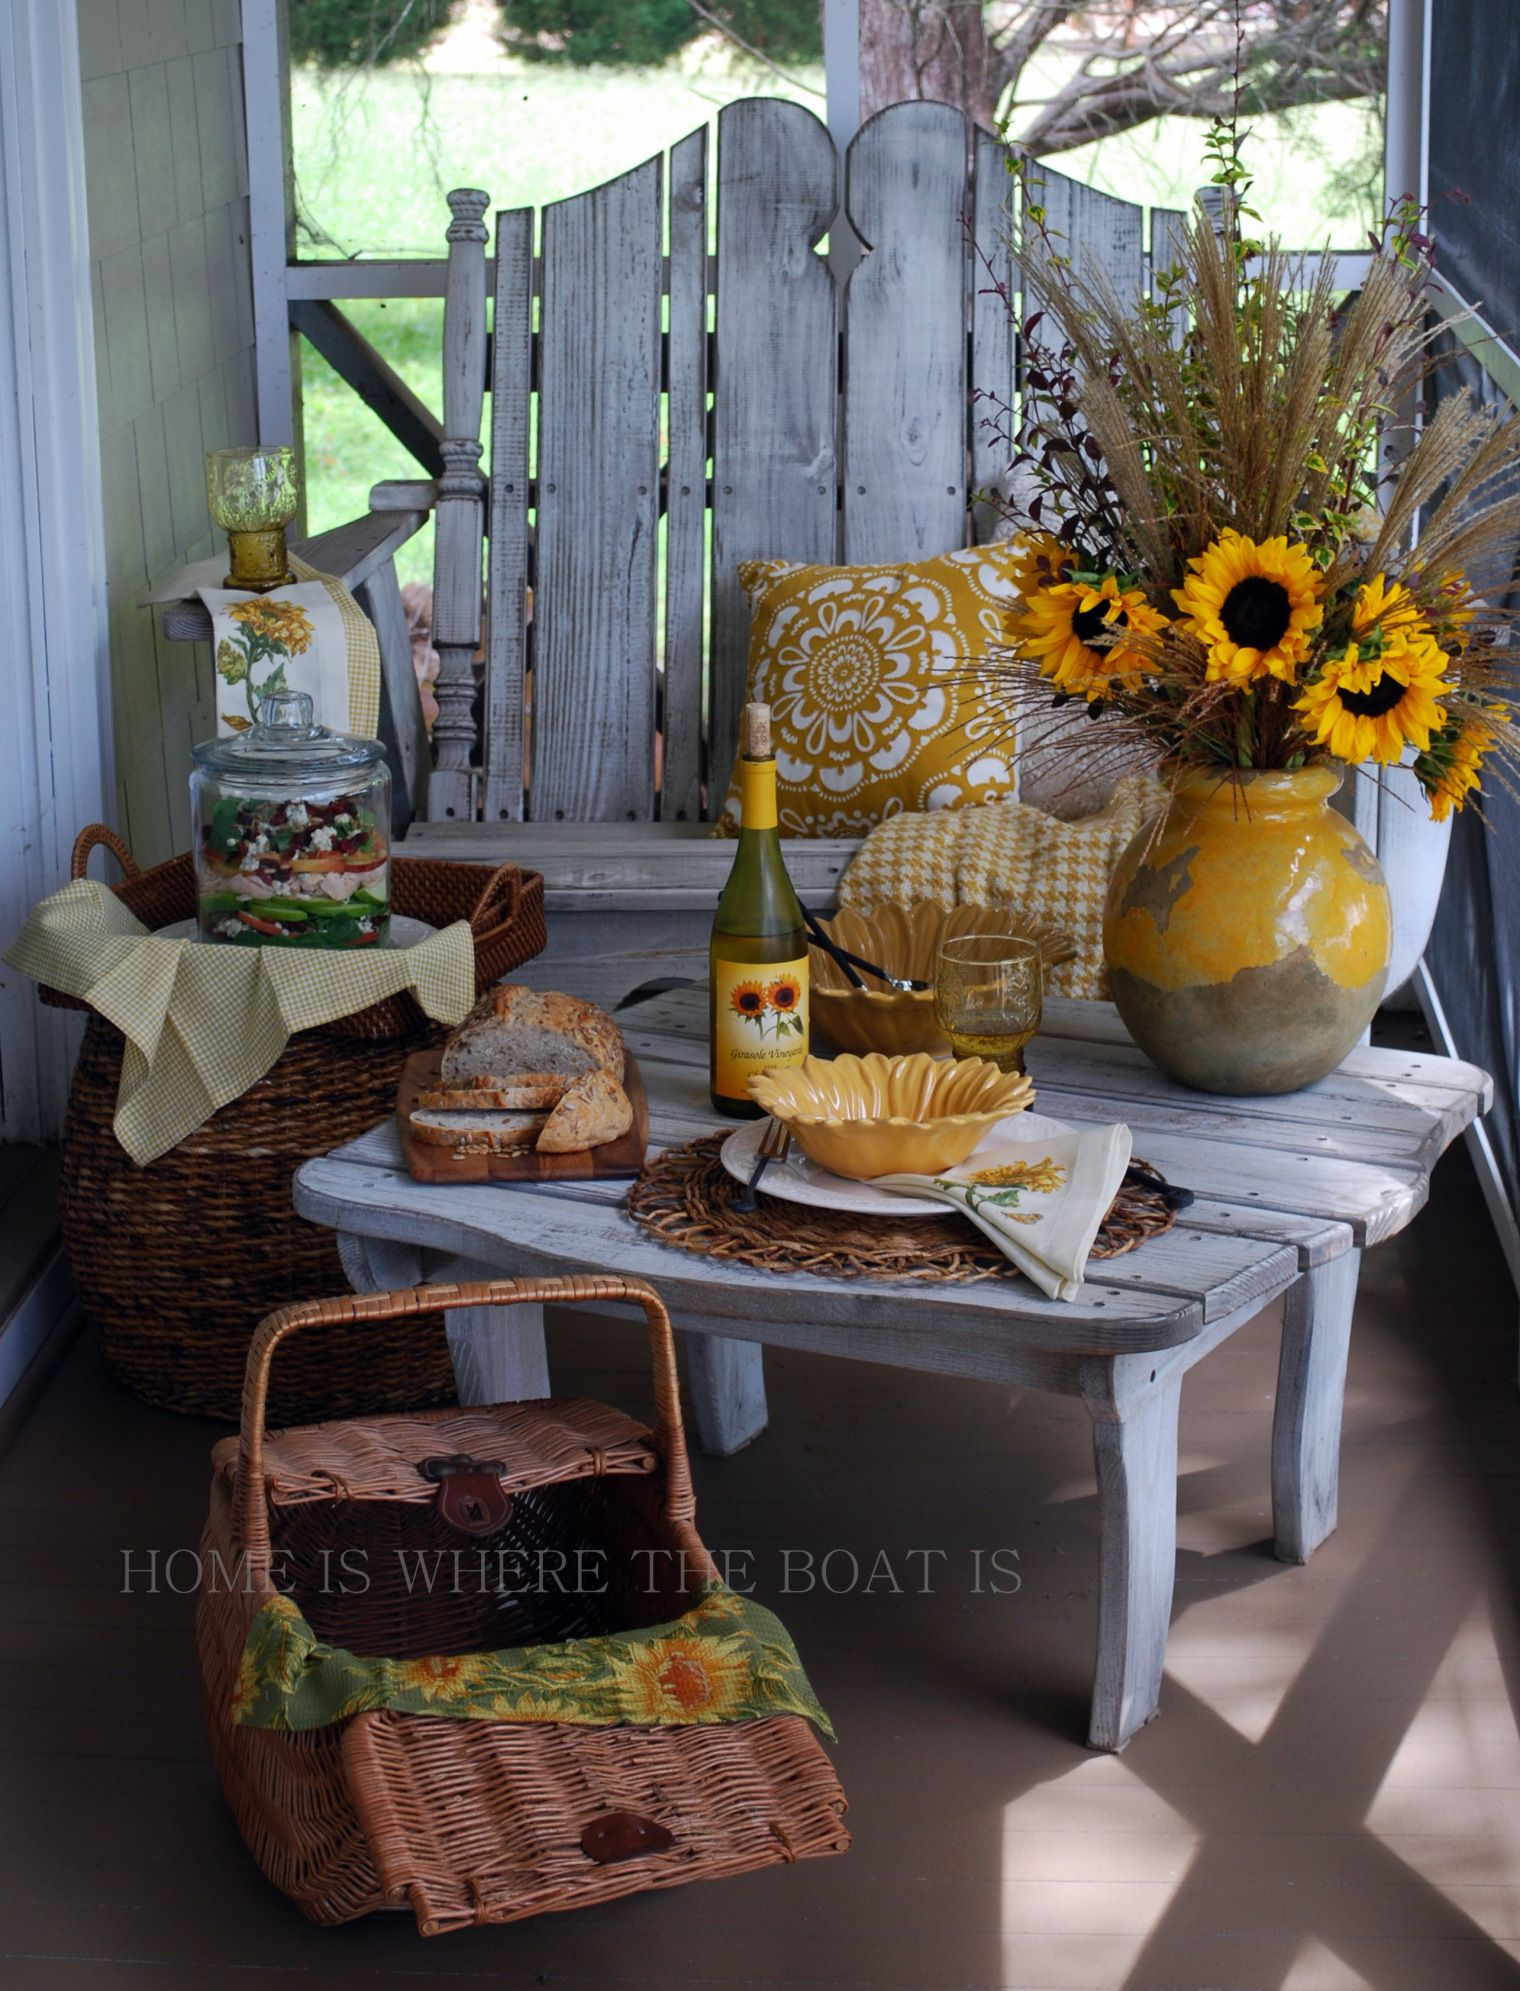 Sunflowers On The Porch - Homeiswheretheboatisnet